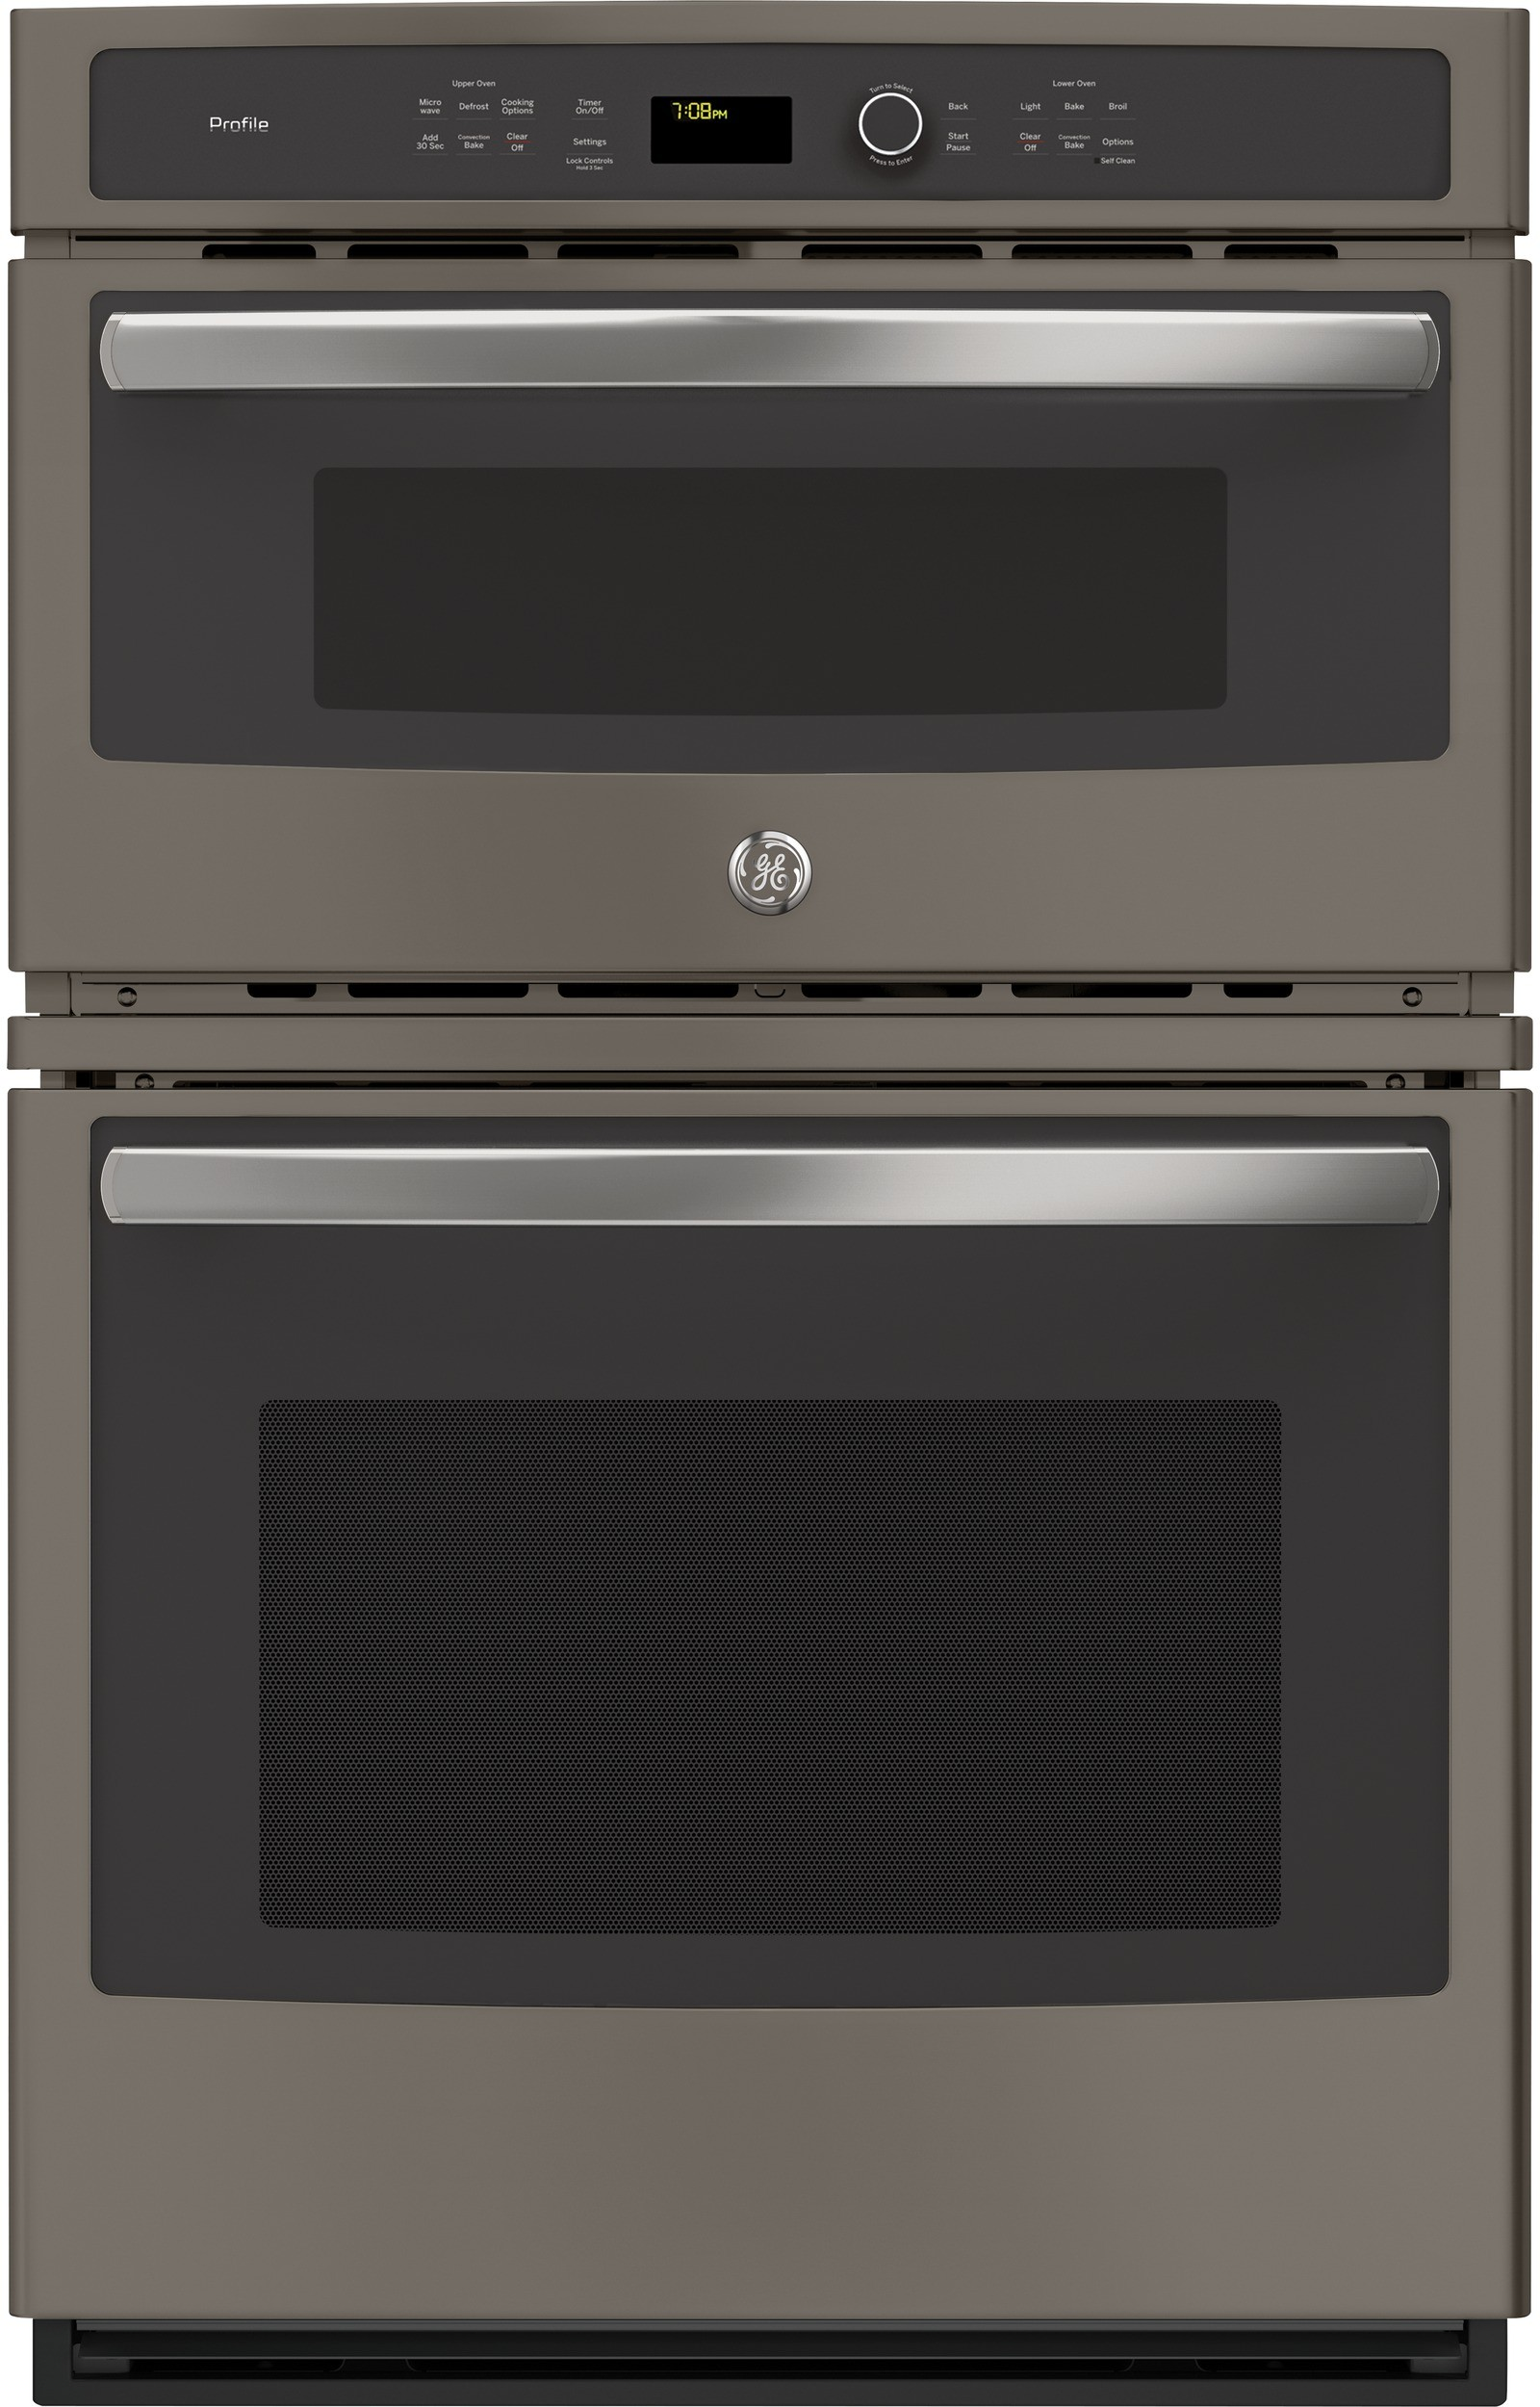 Ge Pk7800ekes 27 Inch Combination Electric Wall Oven With 6 Total Cu Ft Capacity True European Convection Microwave Proof Defrost